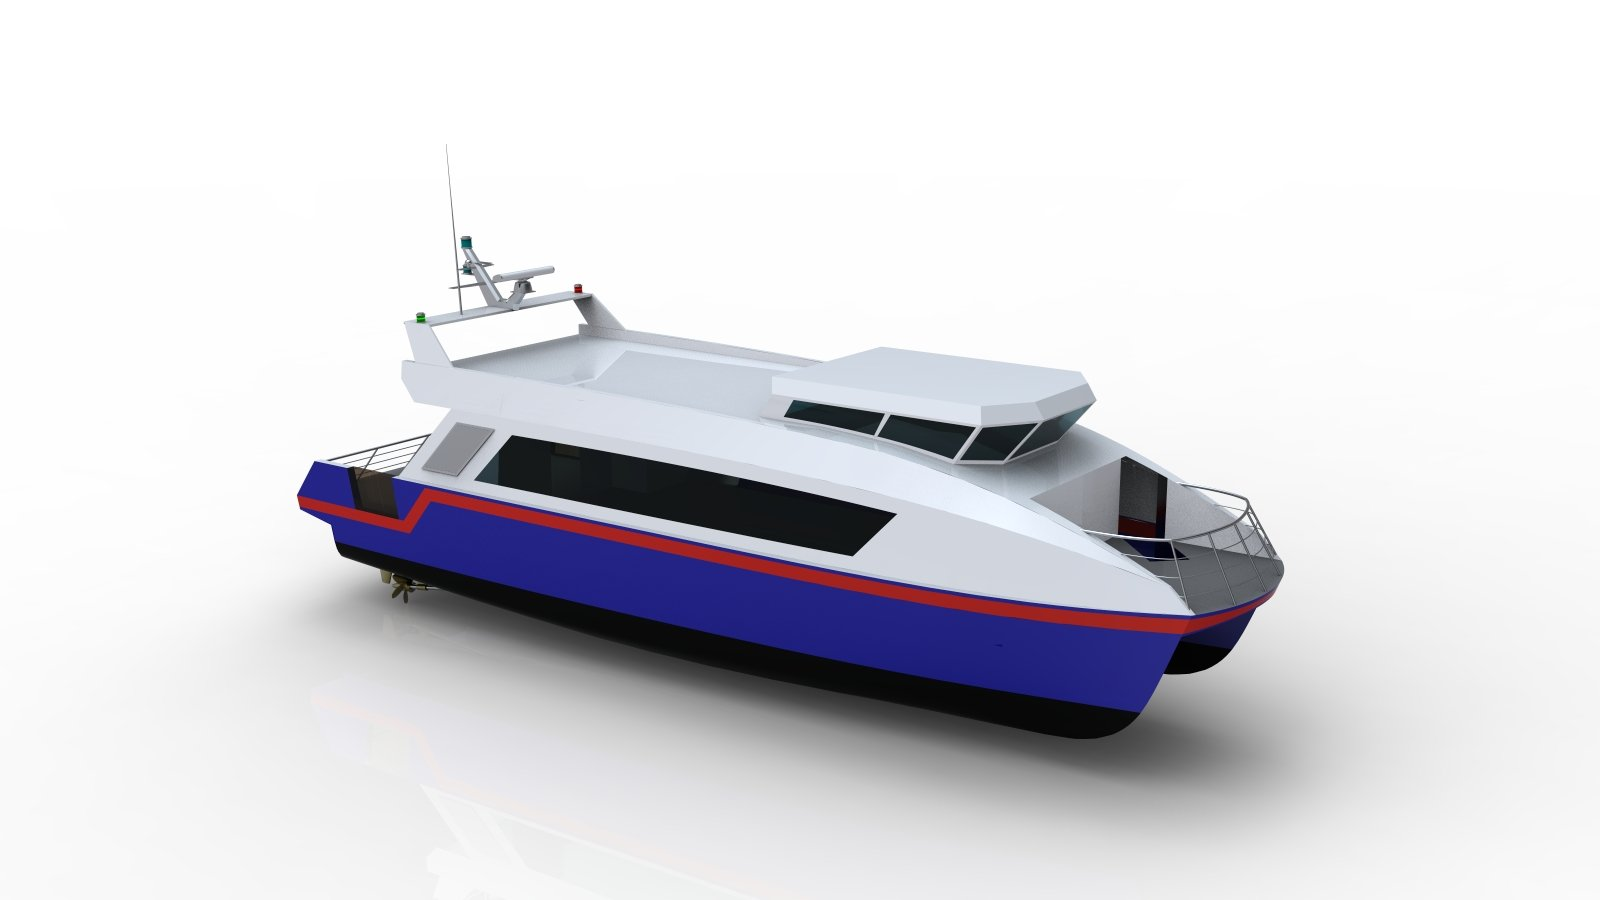 40 passenger catamaran ferry